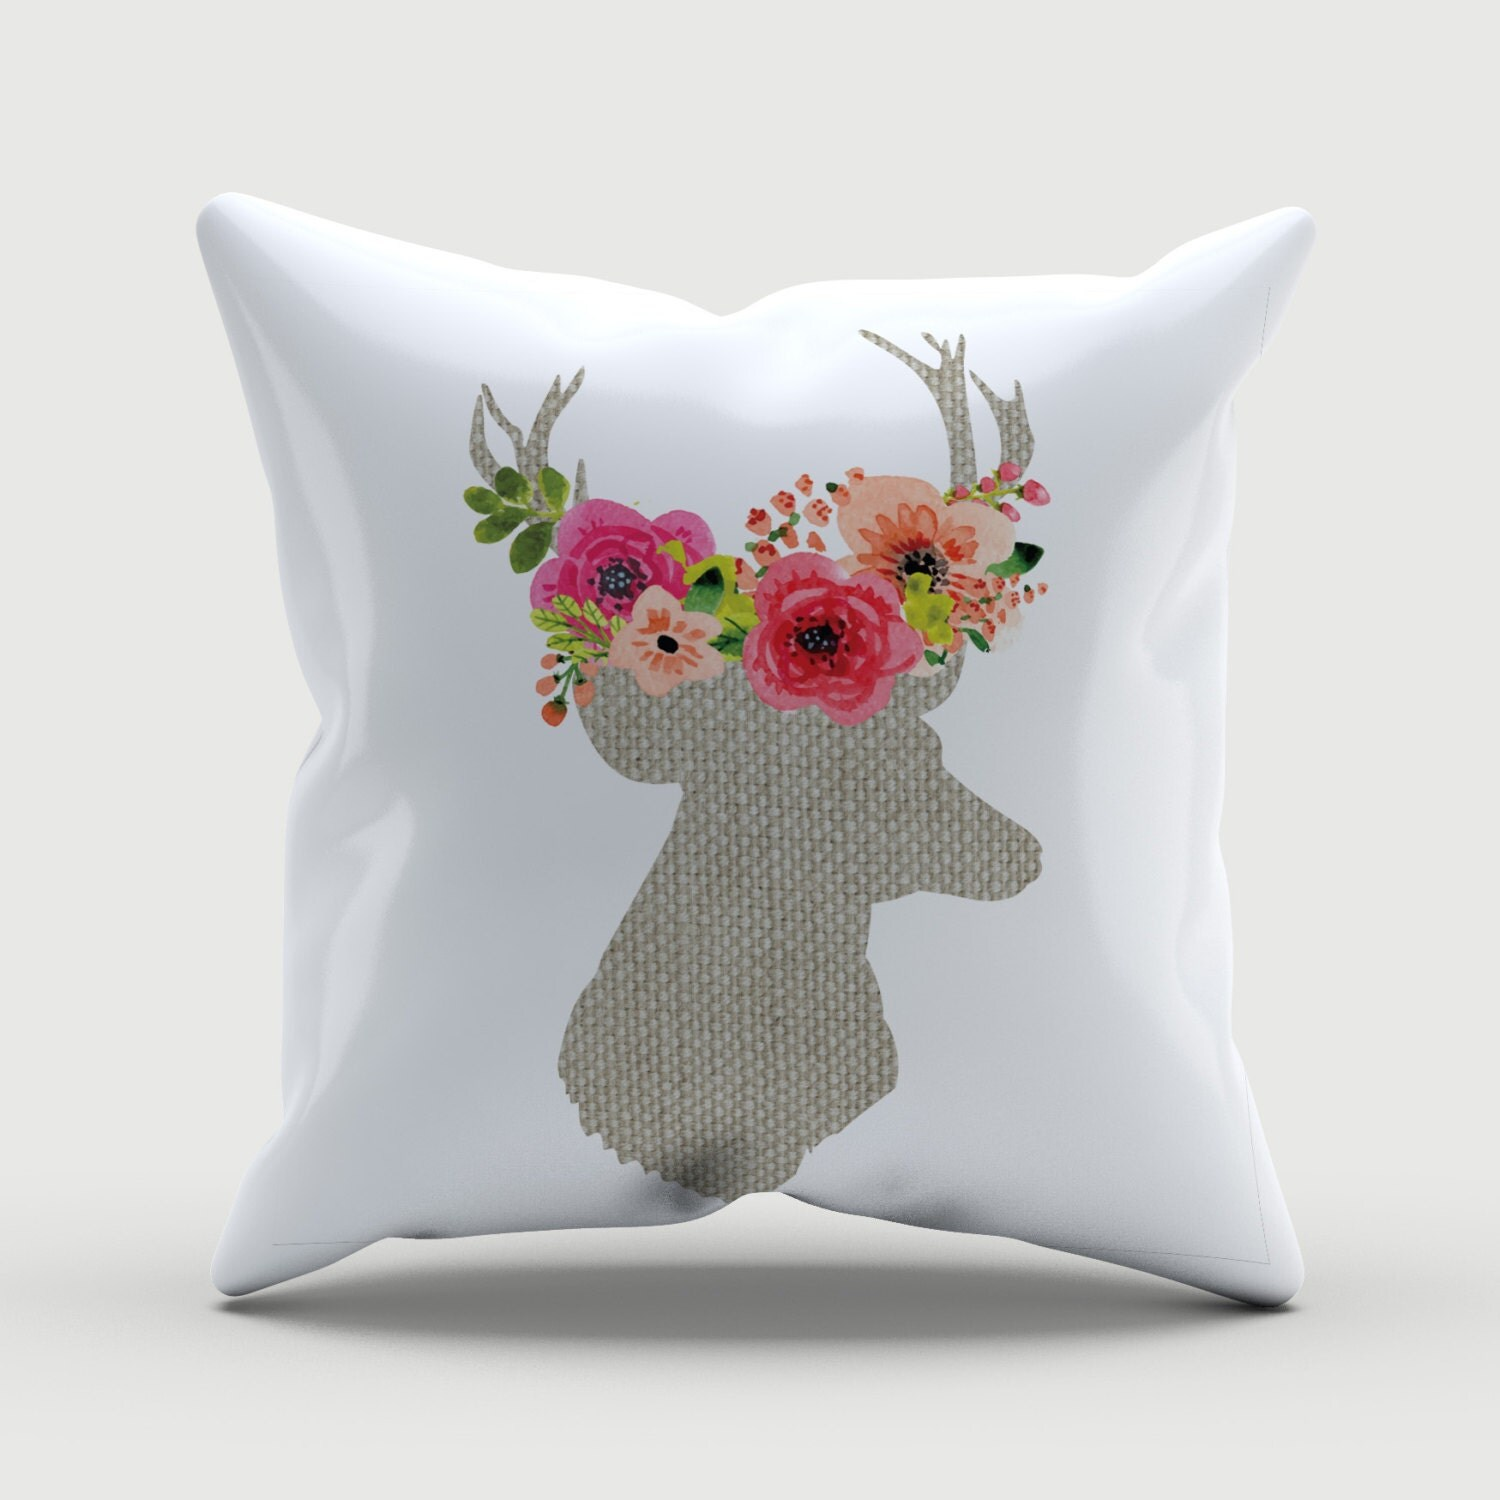 Decorative Pillows Deer : Throw Pillow Deer Pillow Decorative Pillow Deer Decor